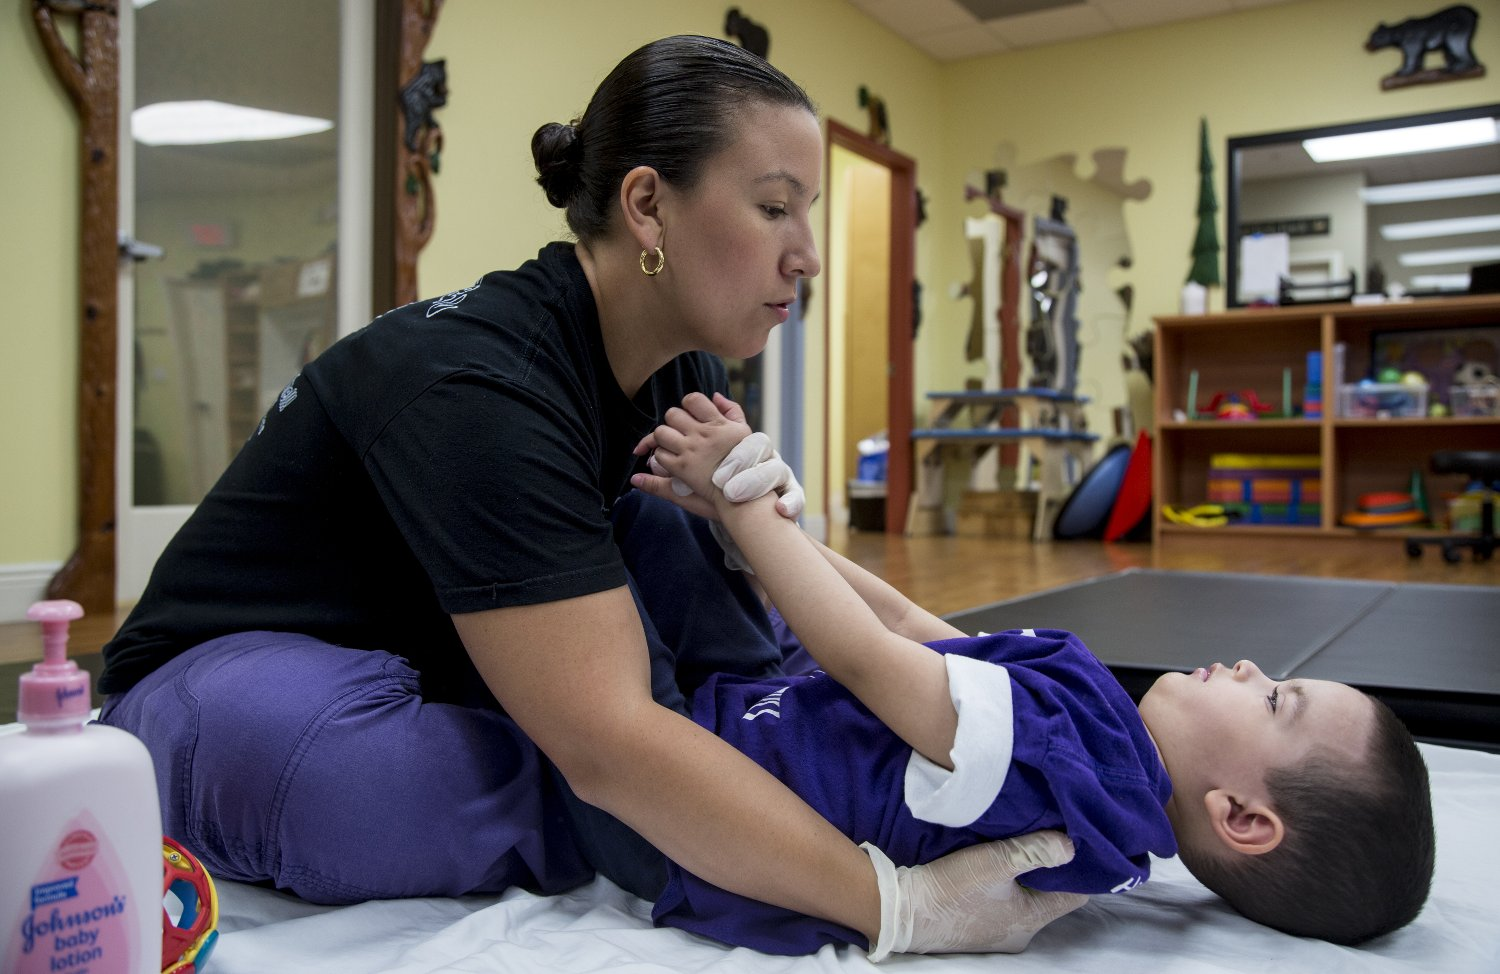 Physical therapist Cynthia Espinal excercises Bruno Stillo, 4, at B&V Thera-Pro in Miami, Florida.